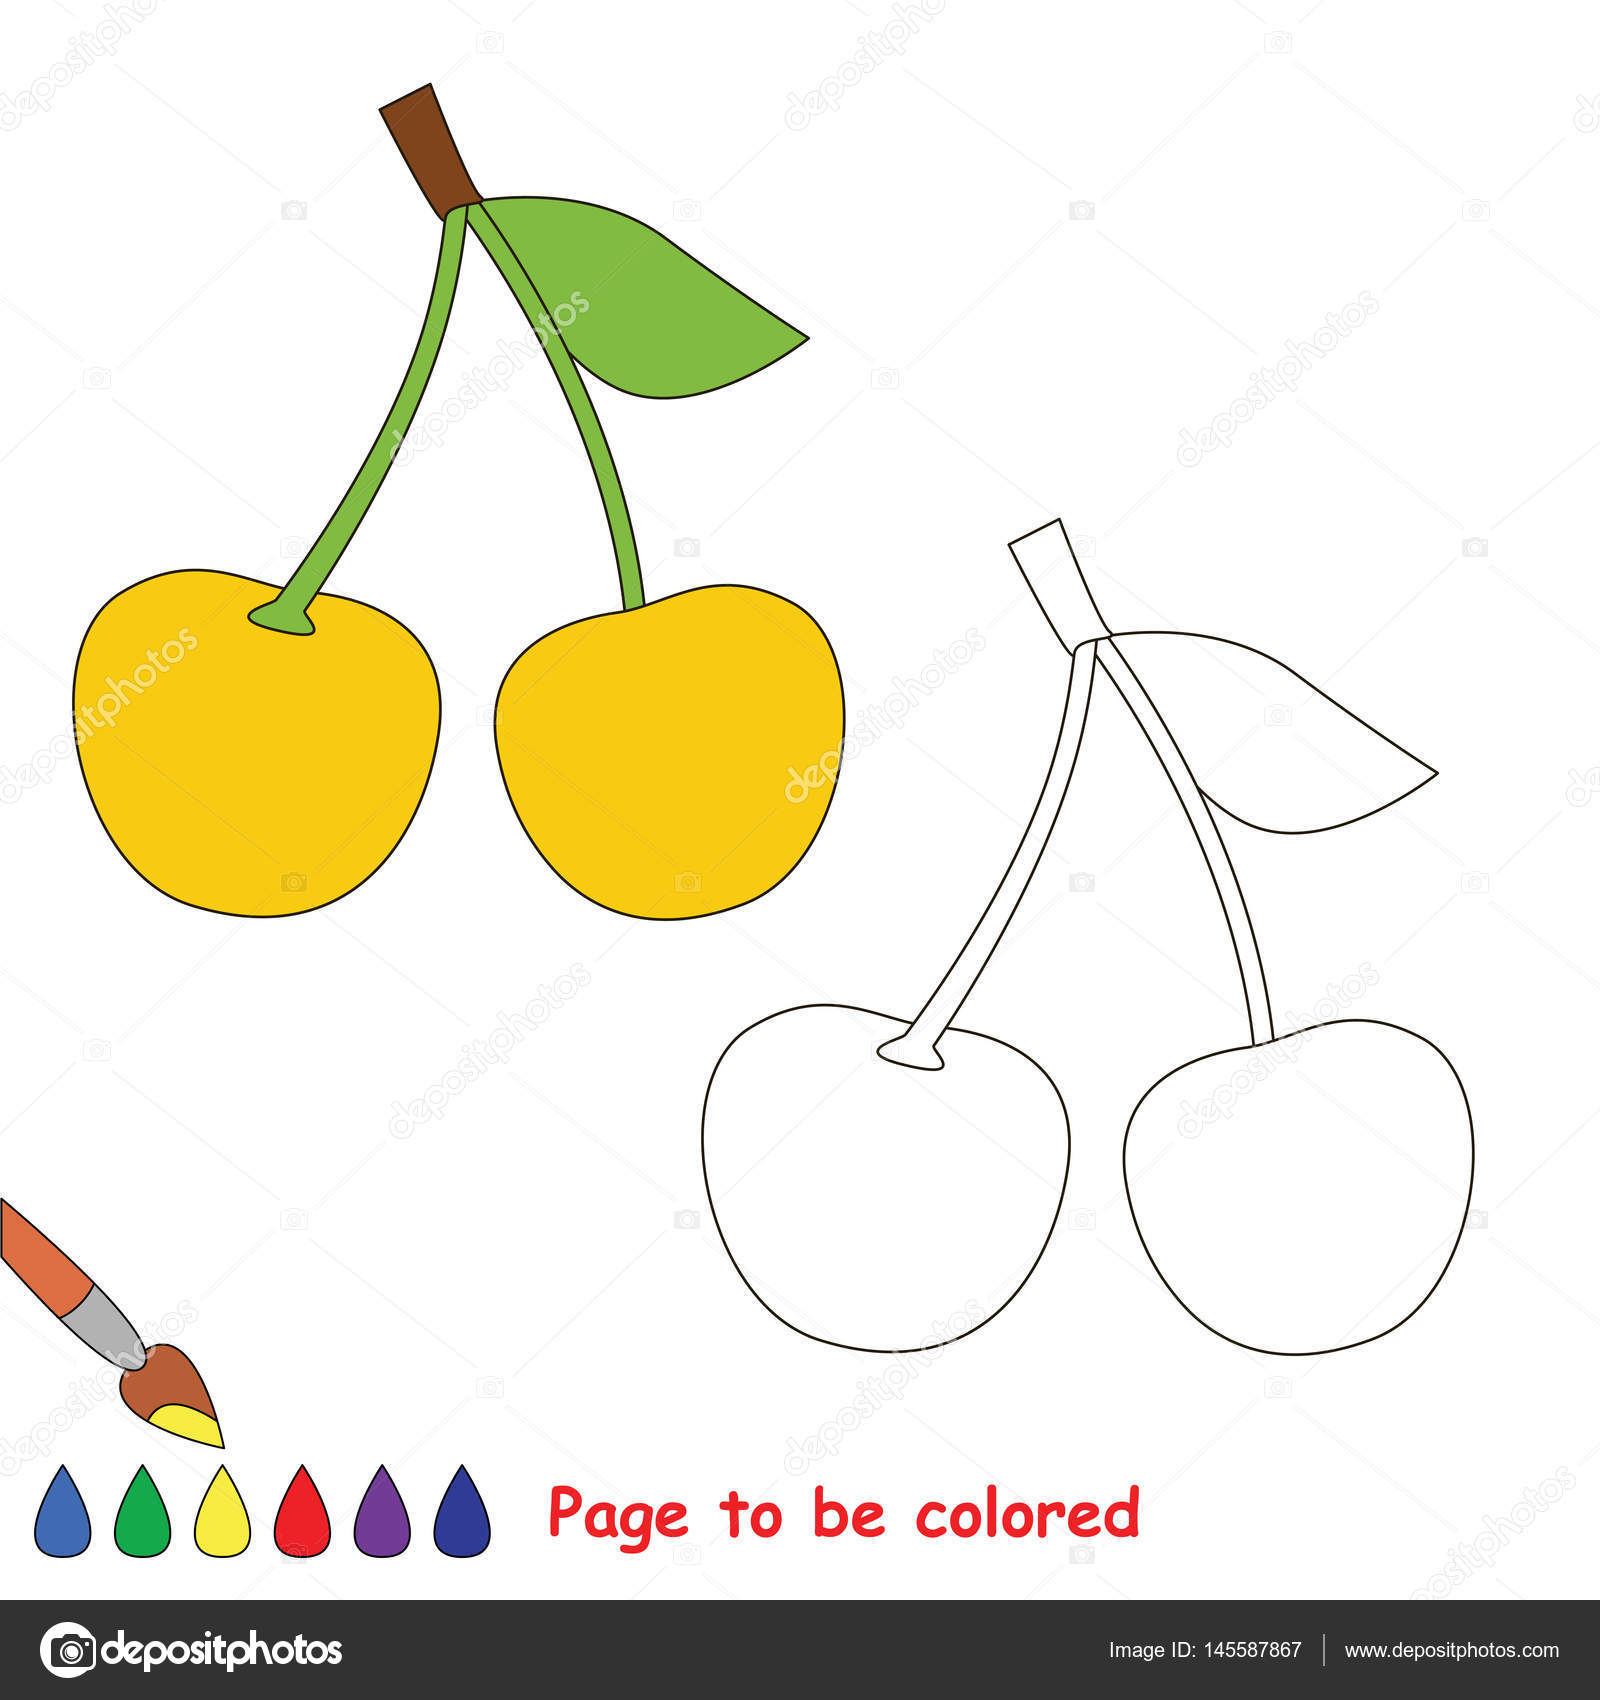 depositphotos stock illustration coloring kid game educational page